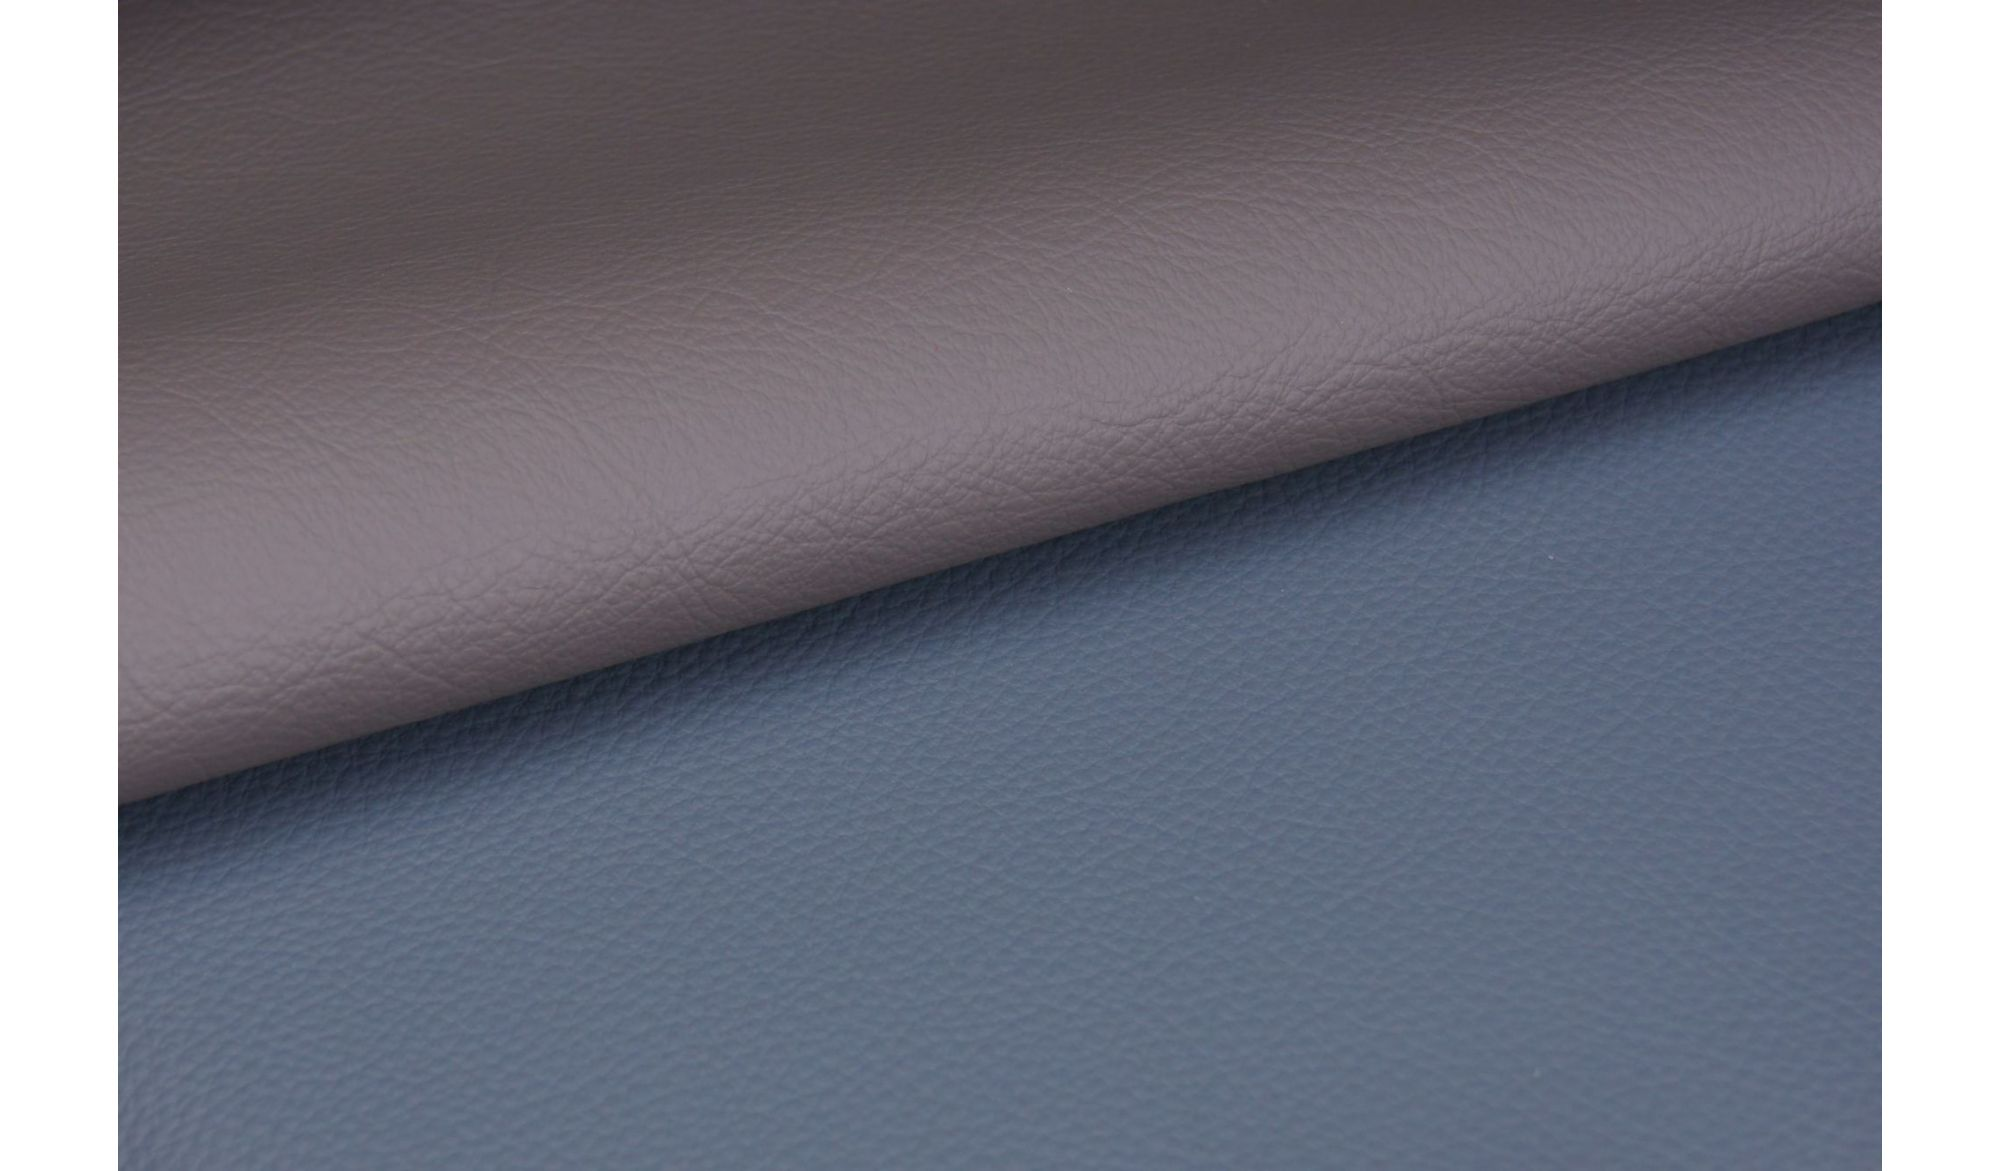 SKÓRA PALOMA Kobalt 05710 - Leather alt_skory_kolor_kobalt 05710 Upholstery IMO Plain - Visualisation